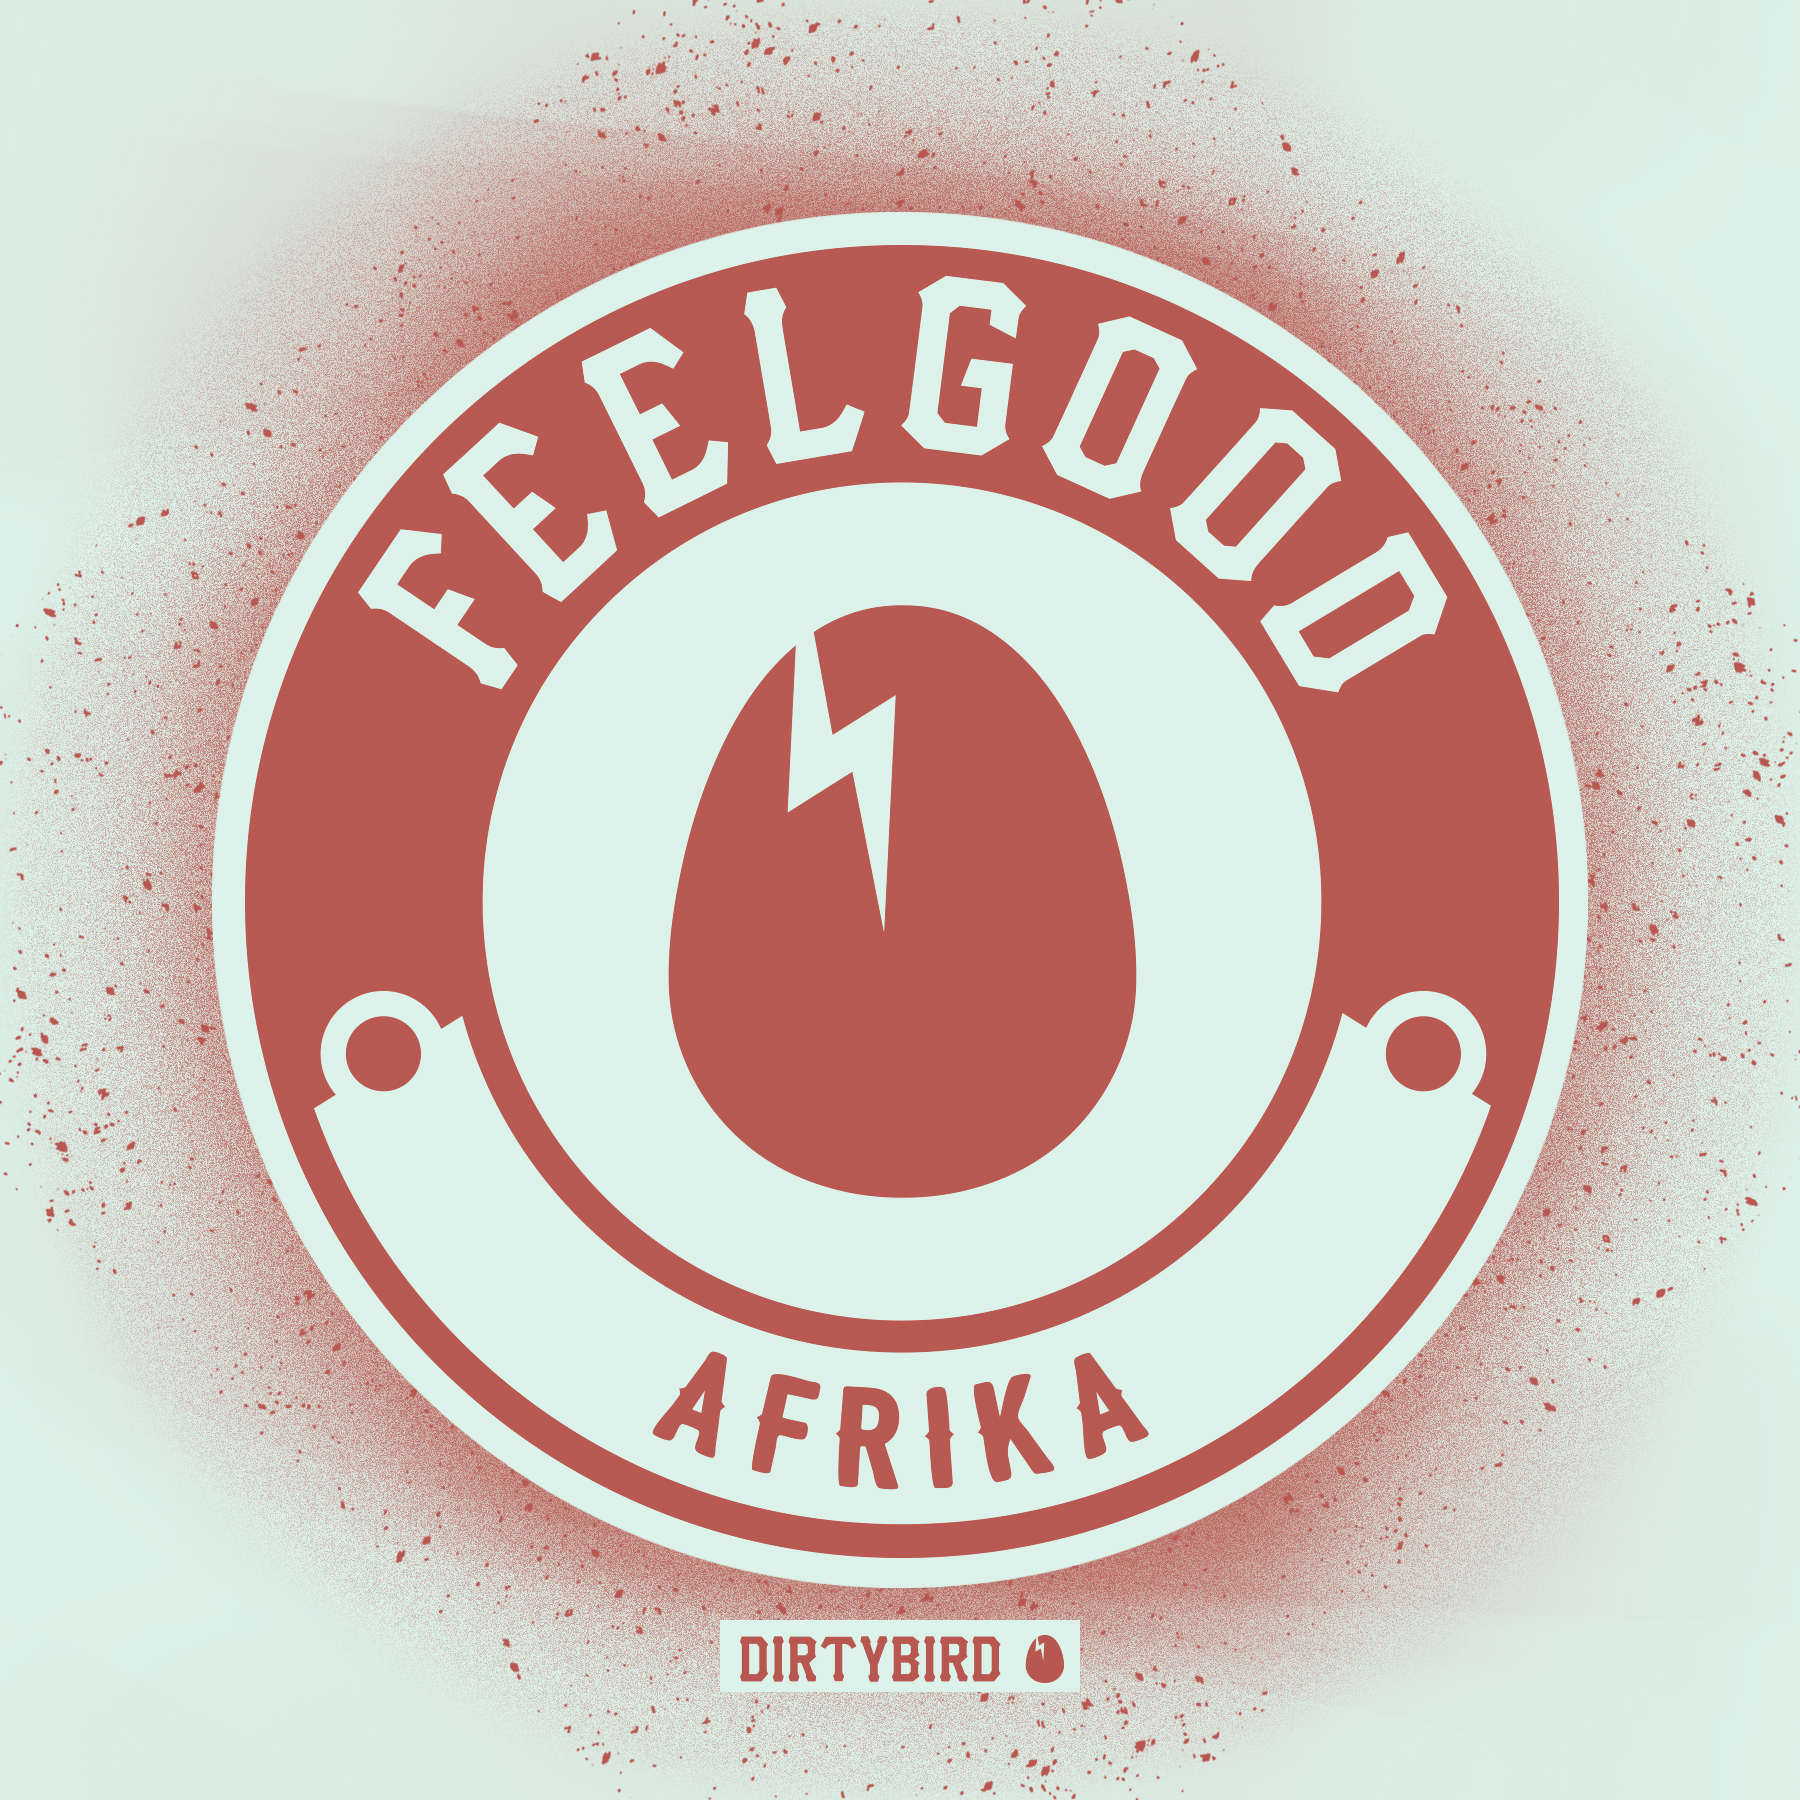 Birdfeed feelgood afrika